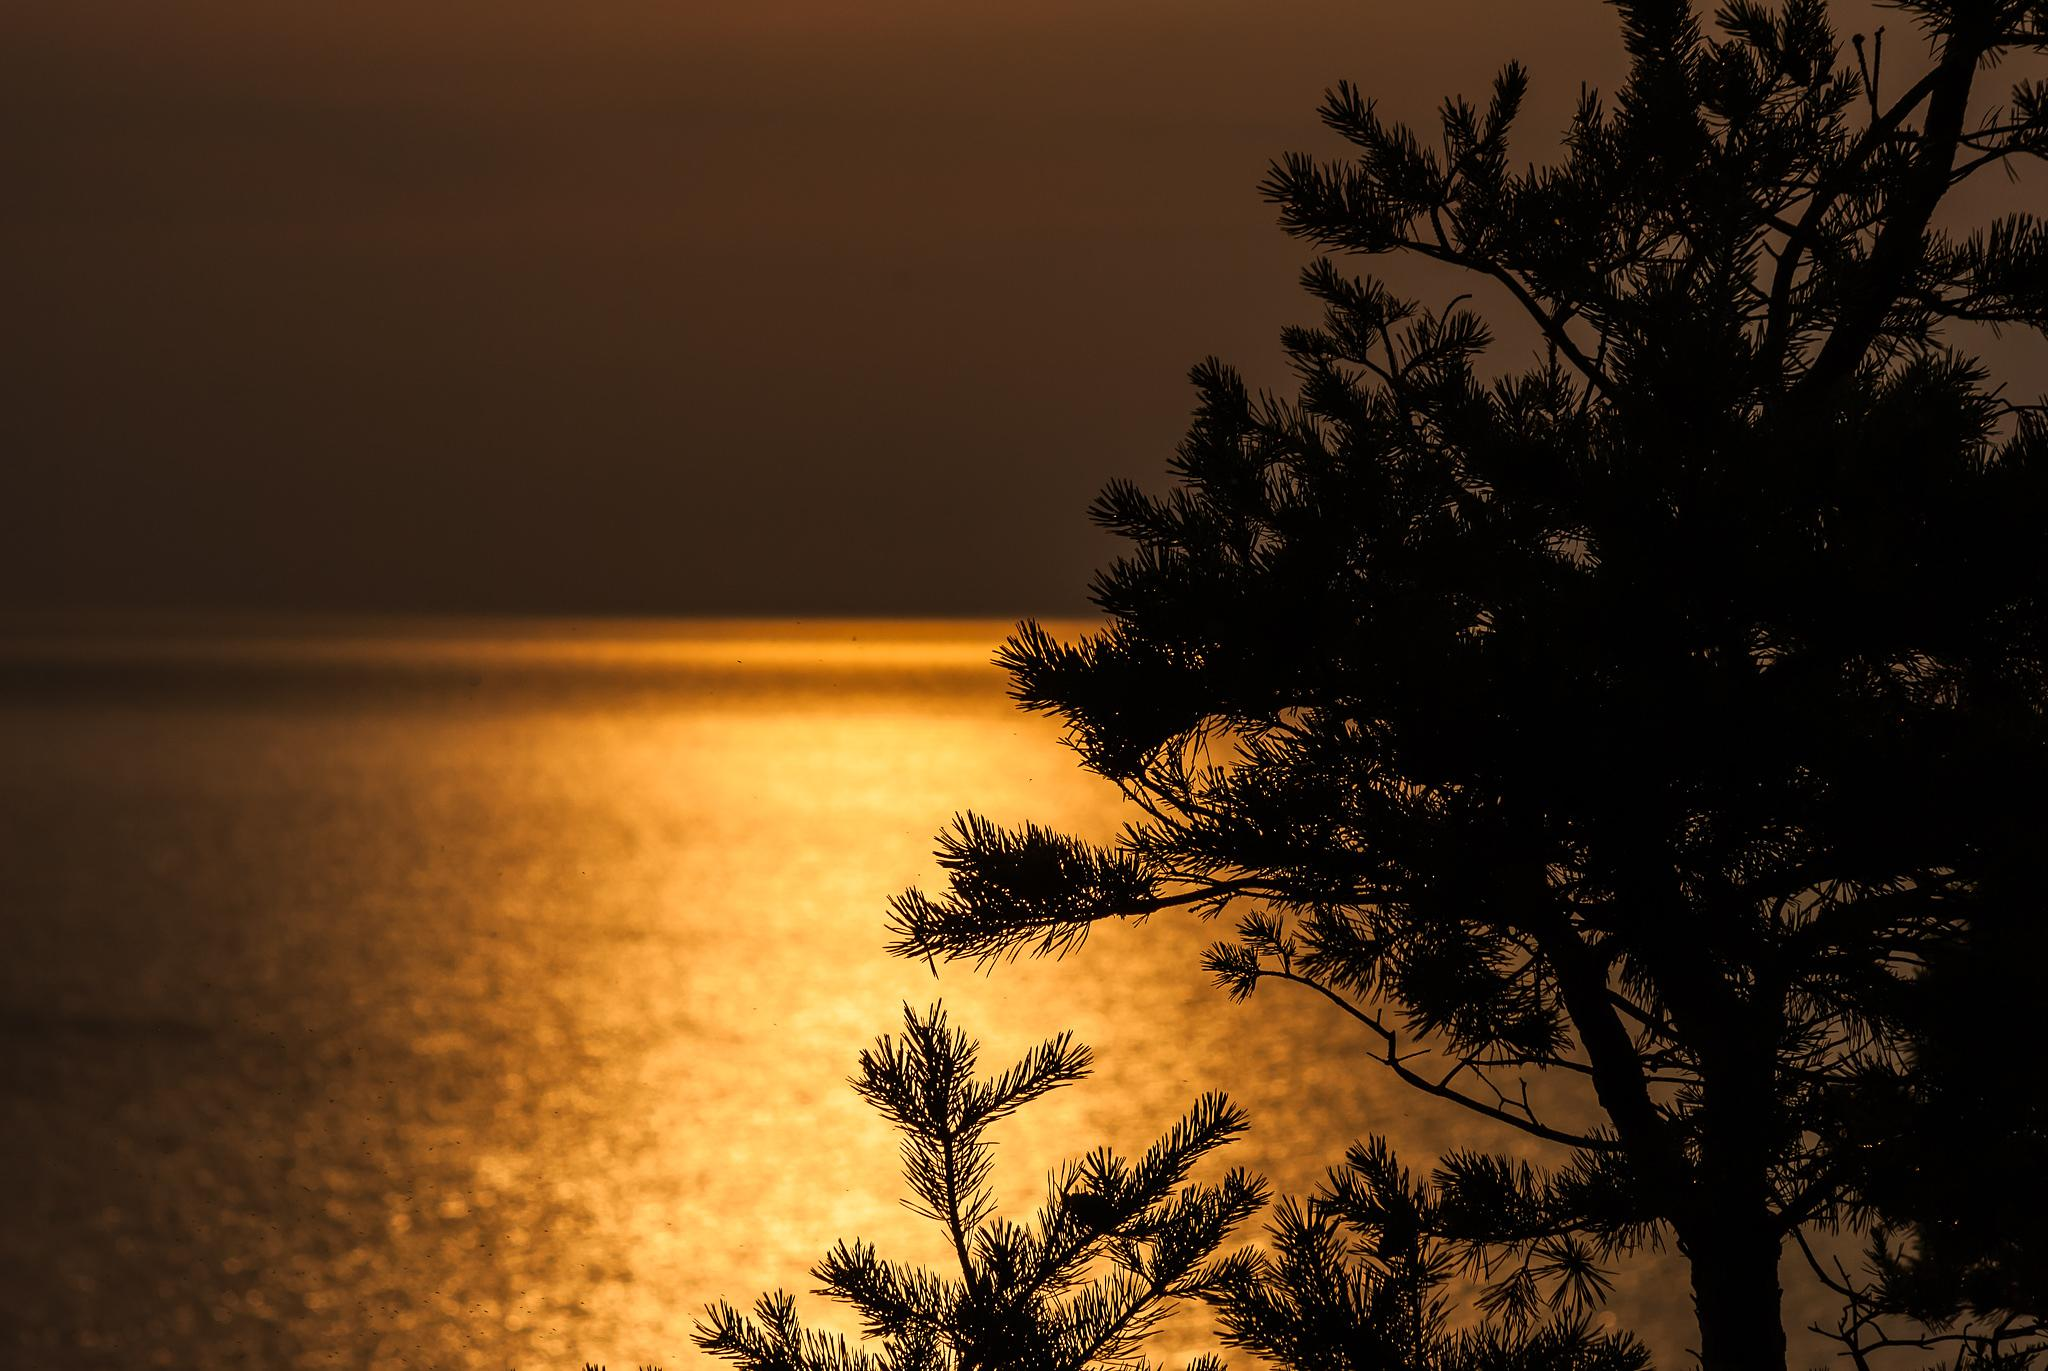 Pine tree in the sunset by Micke Seise